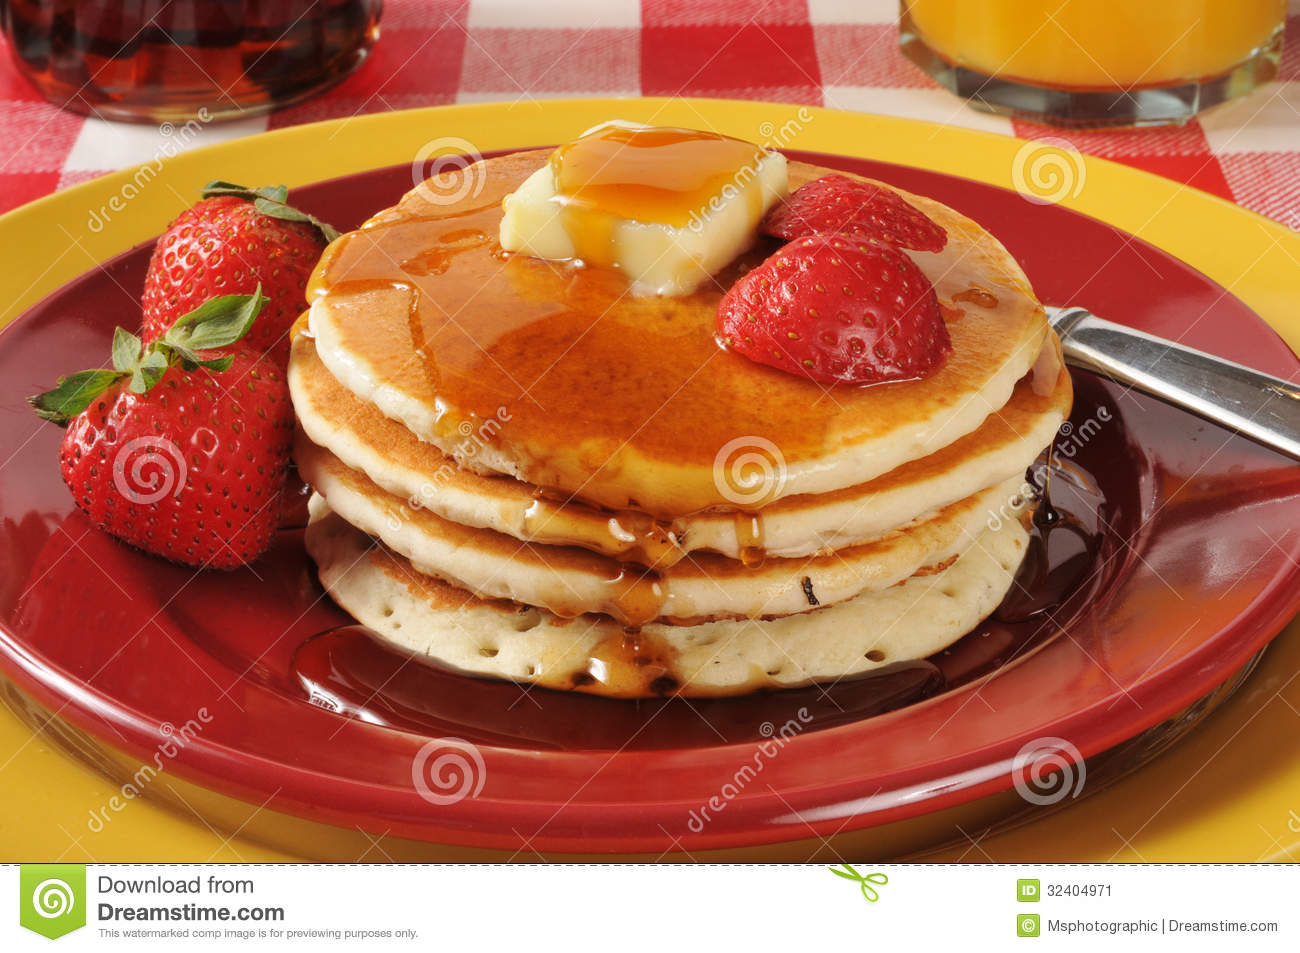 Cake Images Hot : Hot Cakes Stock Image - Image: 32404971